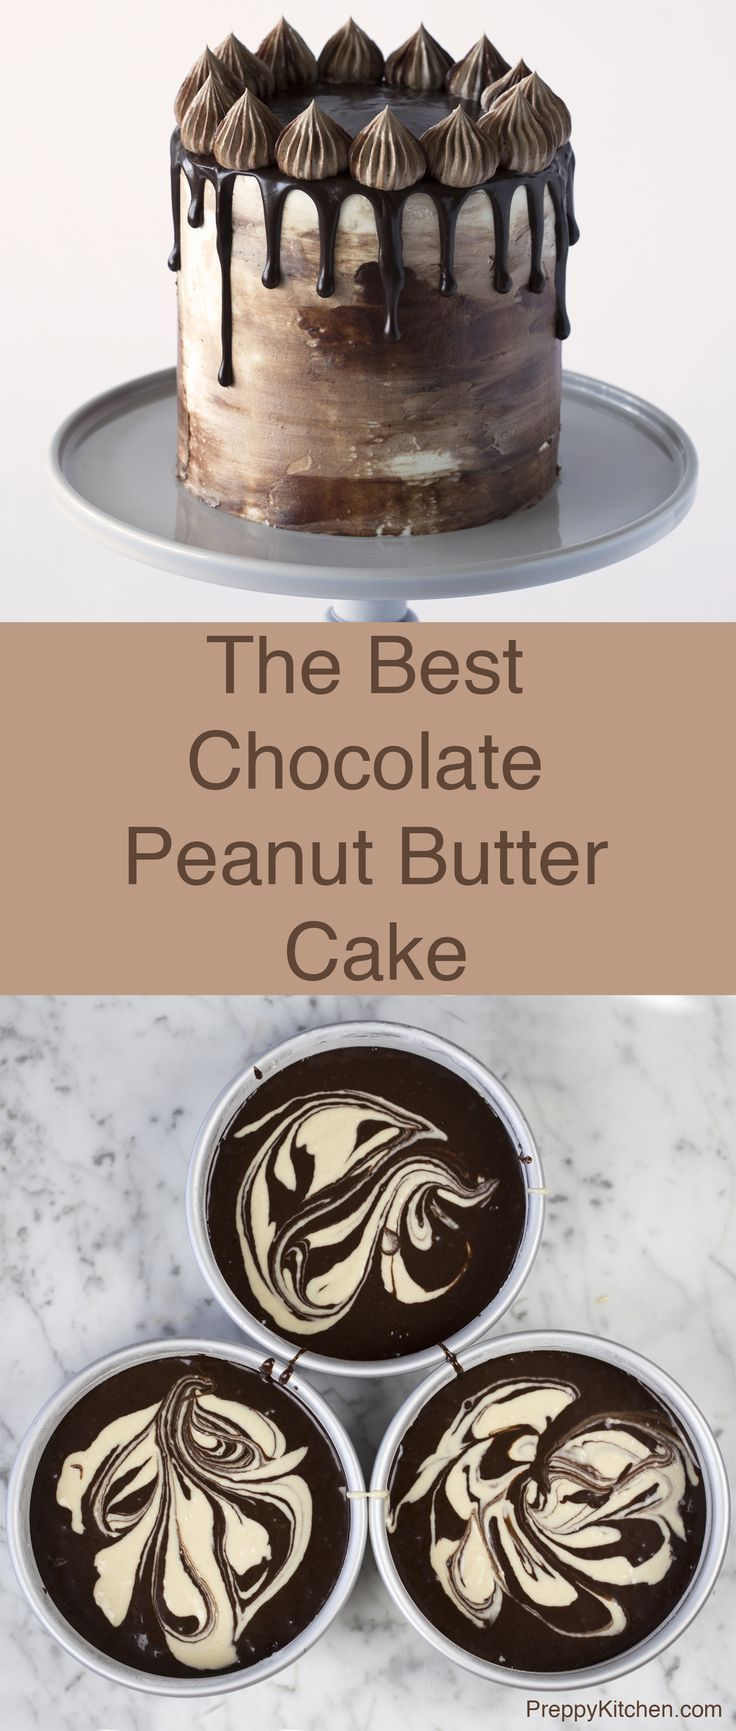 This chocolate cake is marbleized with a peanut butter batter, covered in Italian Buttercream and topped with a beautiful ganache. Click over for the full recipe on the blog.